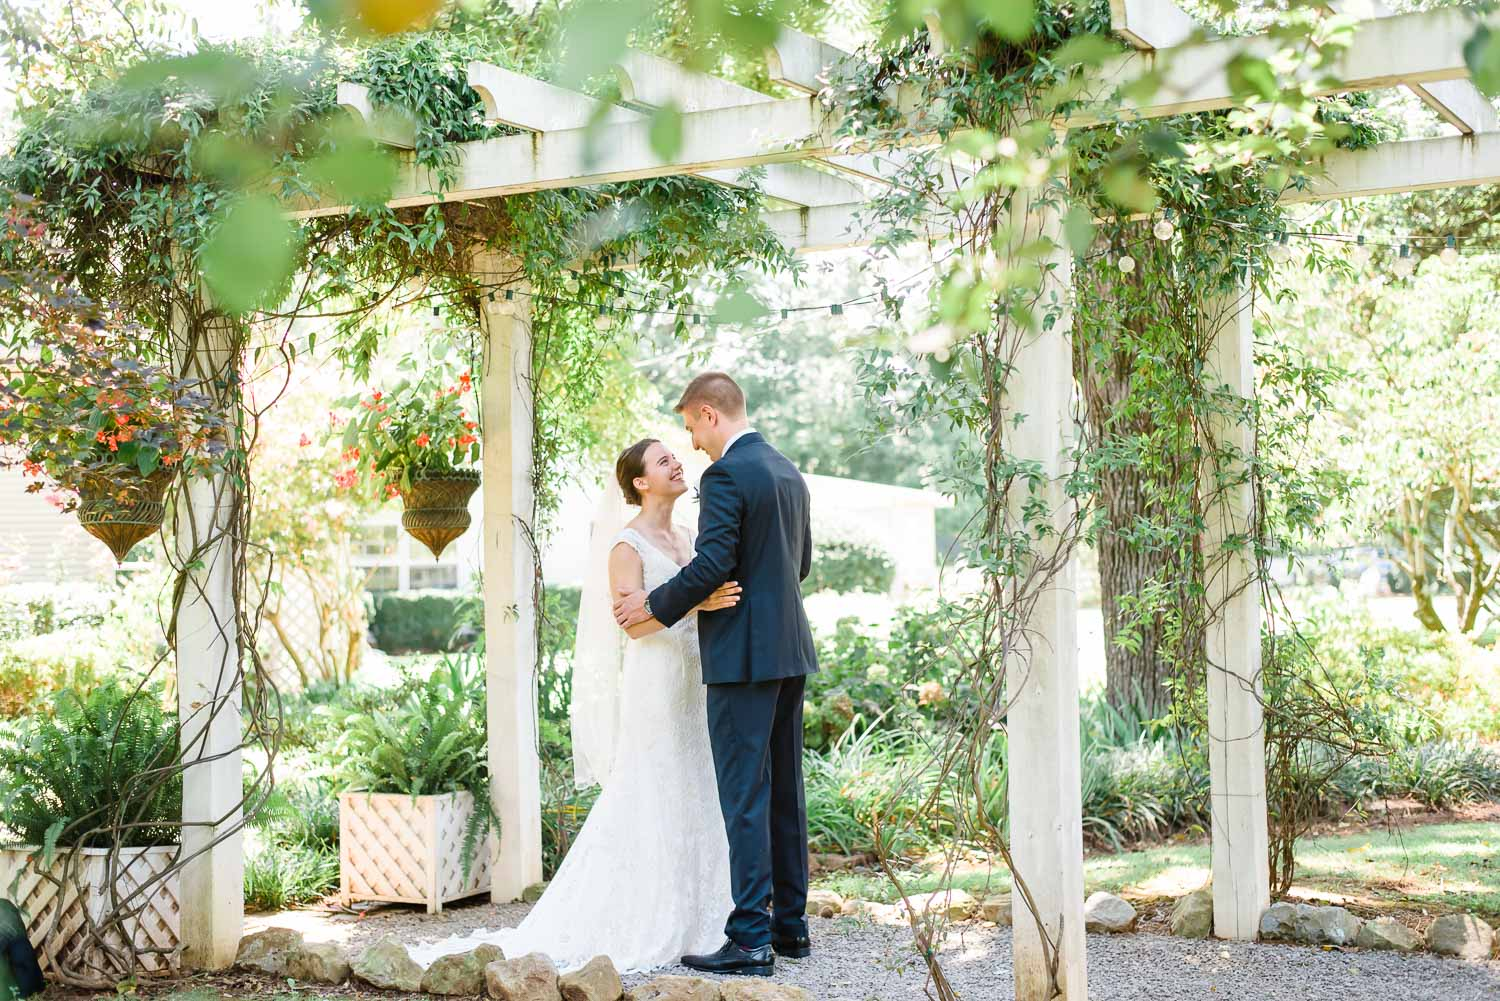 bride and groom talking under garden arbor at Creekside Plantation venue in Huntsville AL